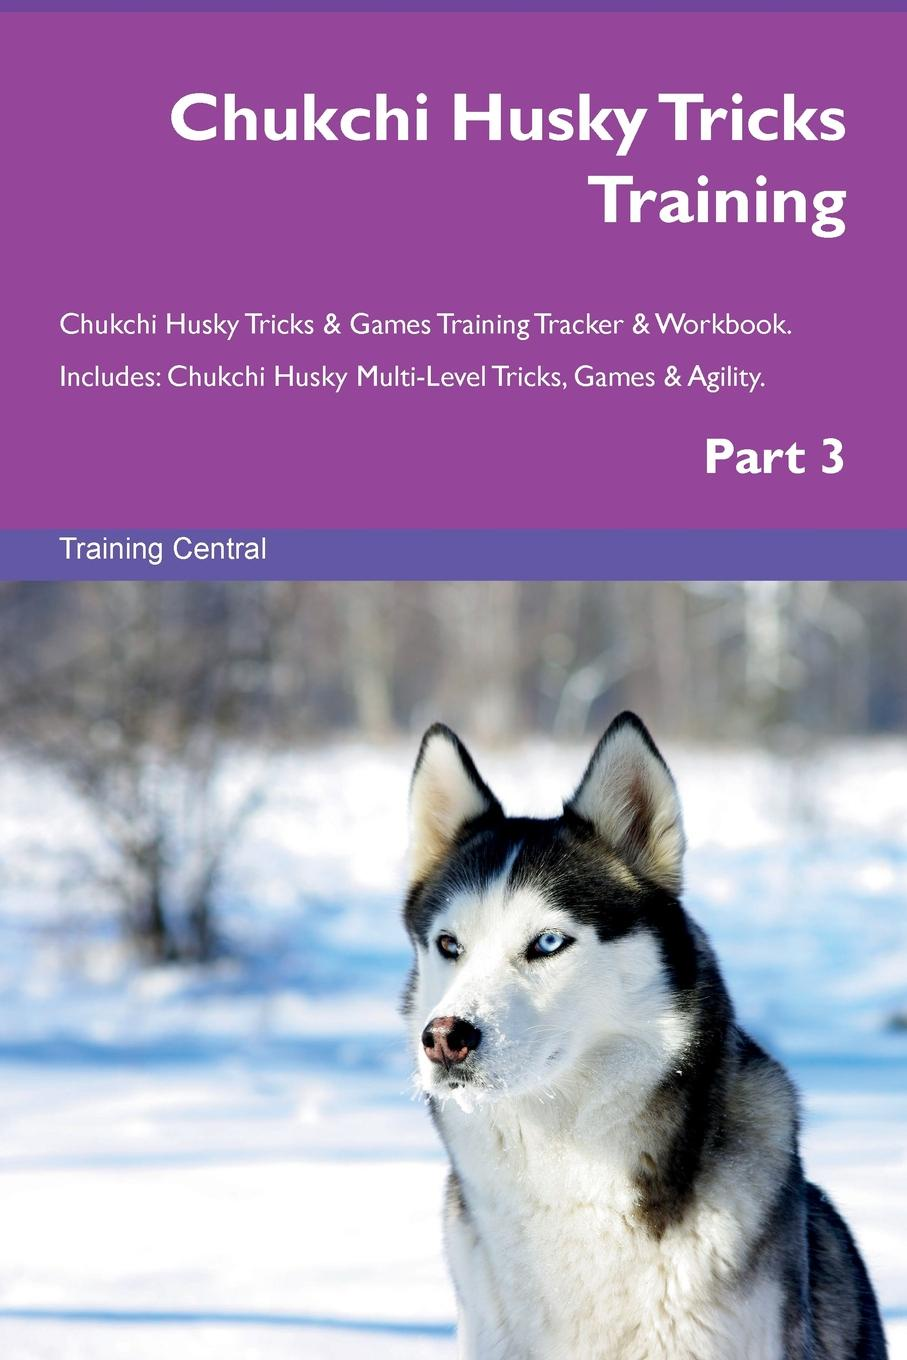 Training Central Chukchi Husky Tricks Training Chukchi Husky Tricks & Games Training Tracker & Workbook. Includes. Chukchi Husky Multi-Level Tricks, Games & Agility. Part 3 training central siberian husky tricks training siberian husky tricks games training tracker workbook includes siberian husky multi level tricks games agility part 2